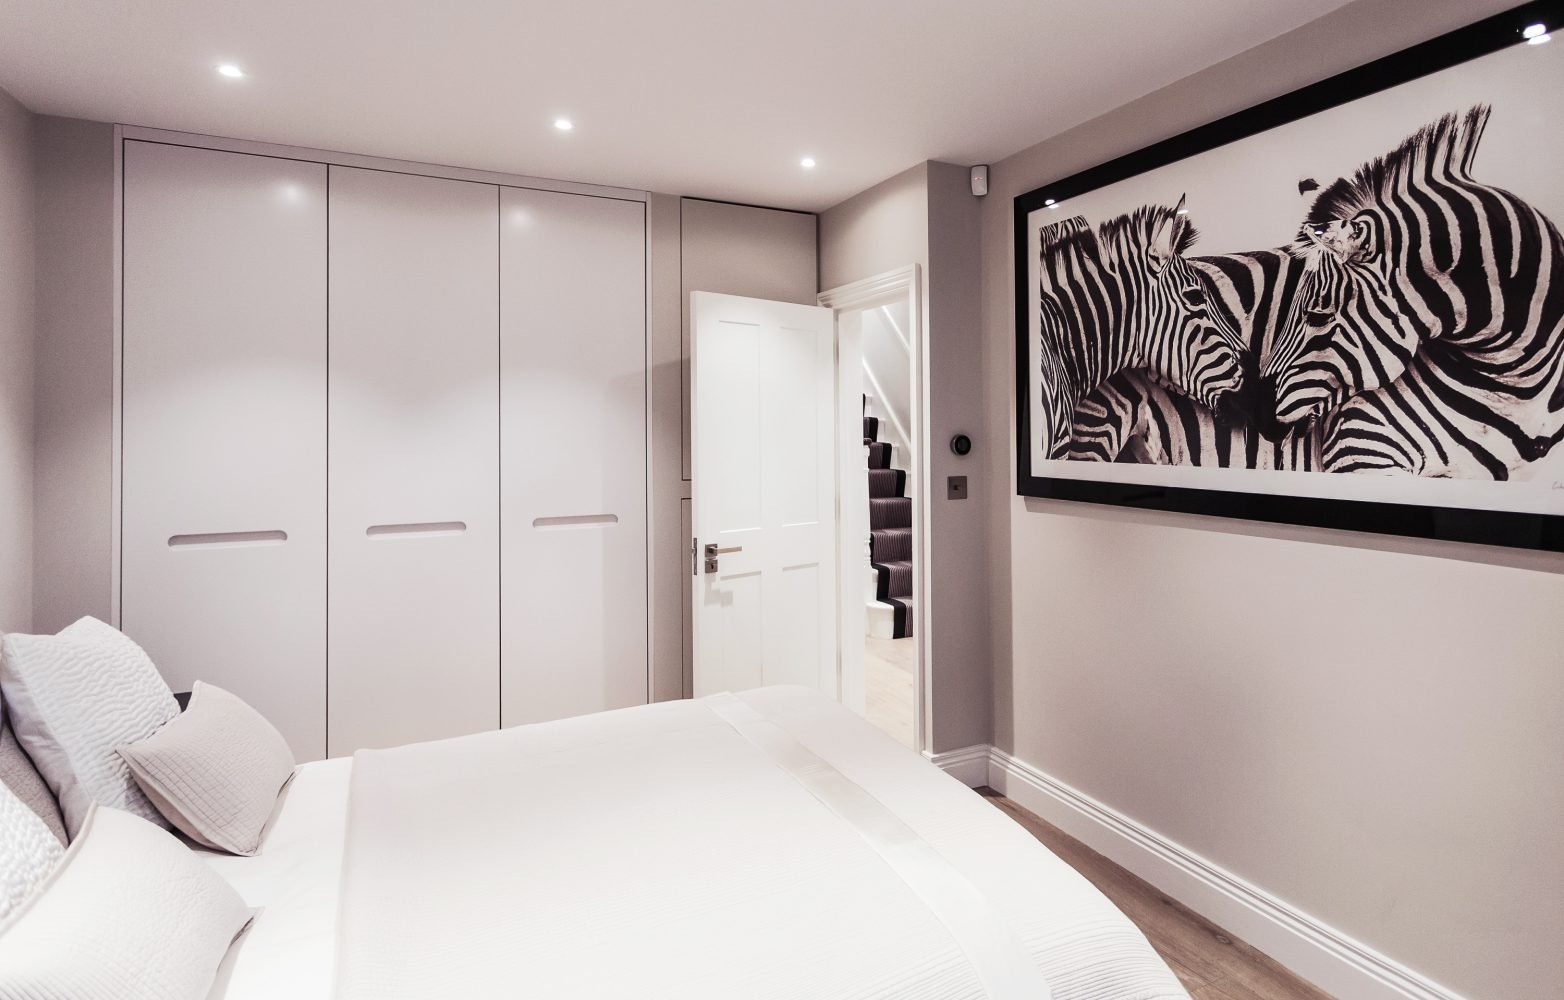 Painting And Decorating A Four Storey Family House In Chelsea, London- Light Master Bedroom With White Painted Walls And Ceiling And White Storage